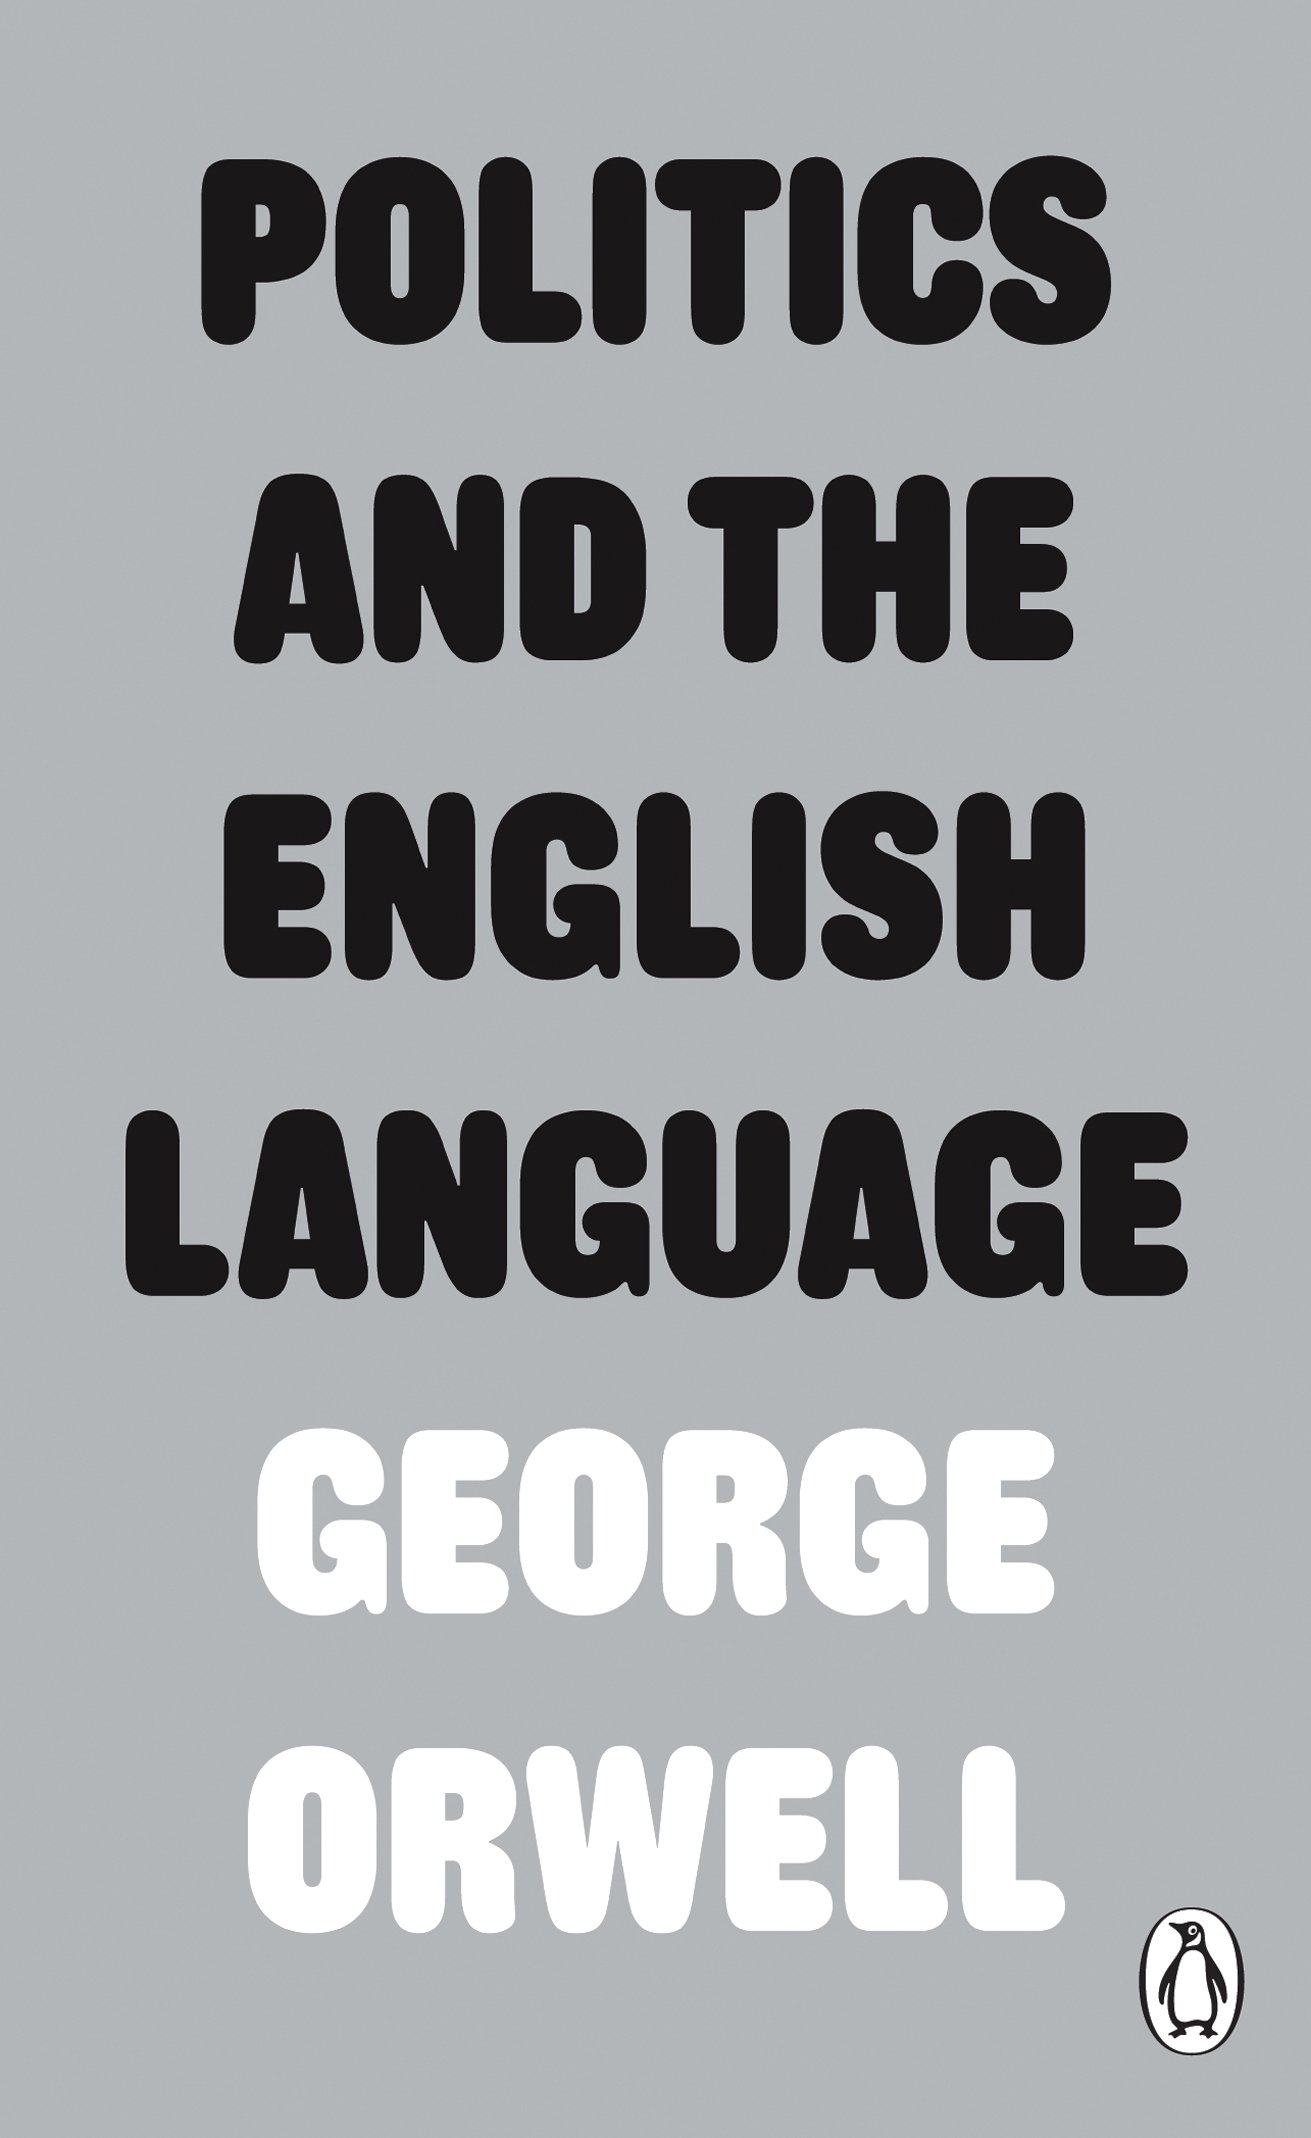 george orwell essay on writing essay on best ideas about  politics and the english language penguin modern classics politics and the english language penguin modern classics